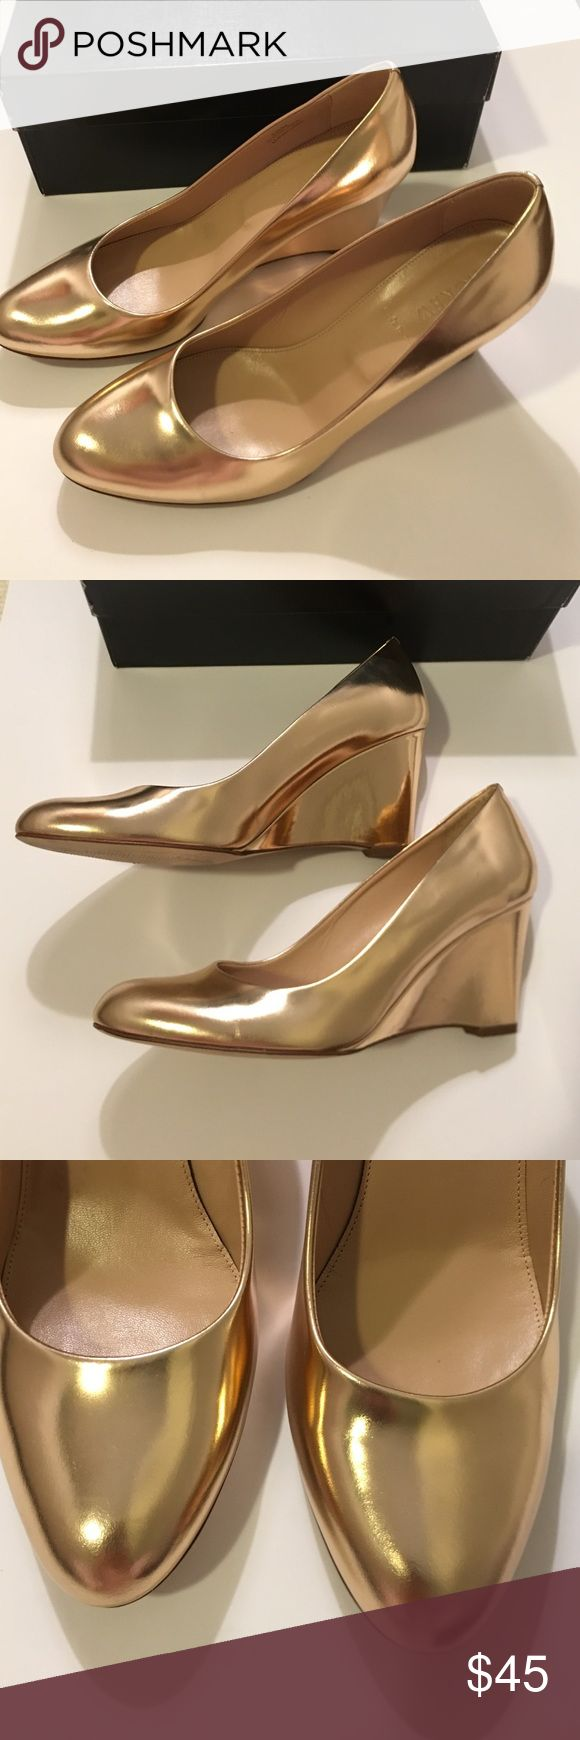 JCrew Martina Metallic wedge Metallic Blush color. Like new.. wore one time to church. Excellent condition! J. Crew Shoes Wedges